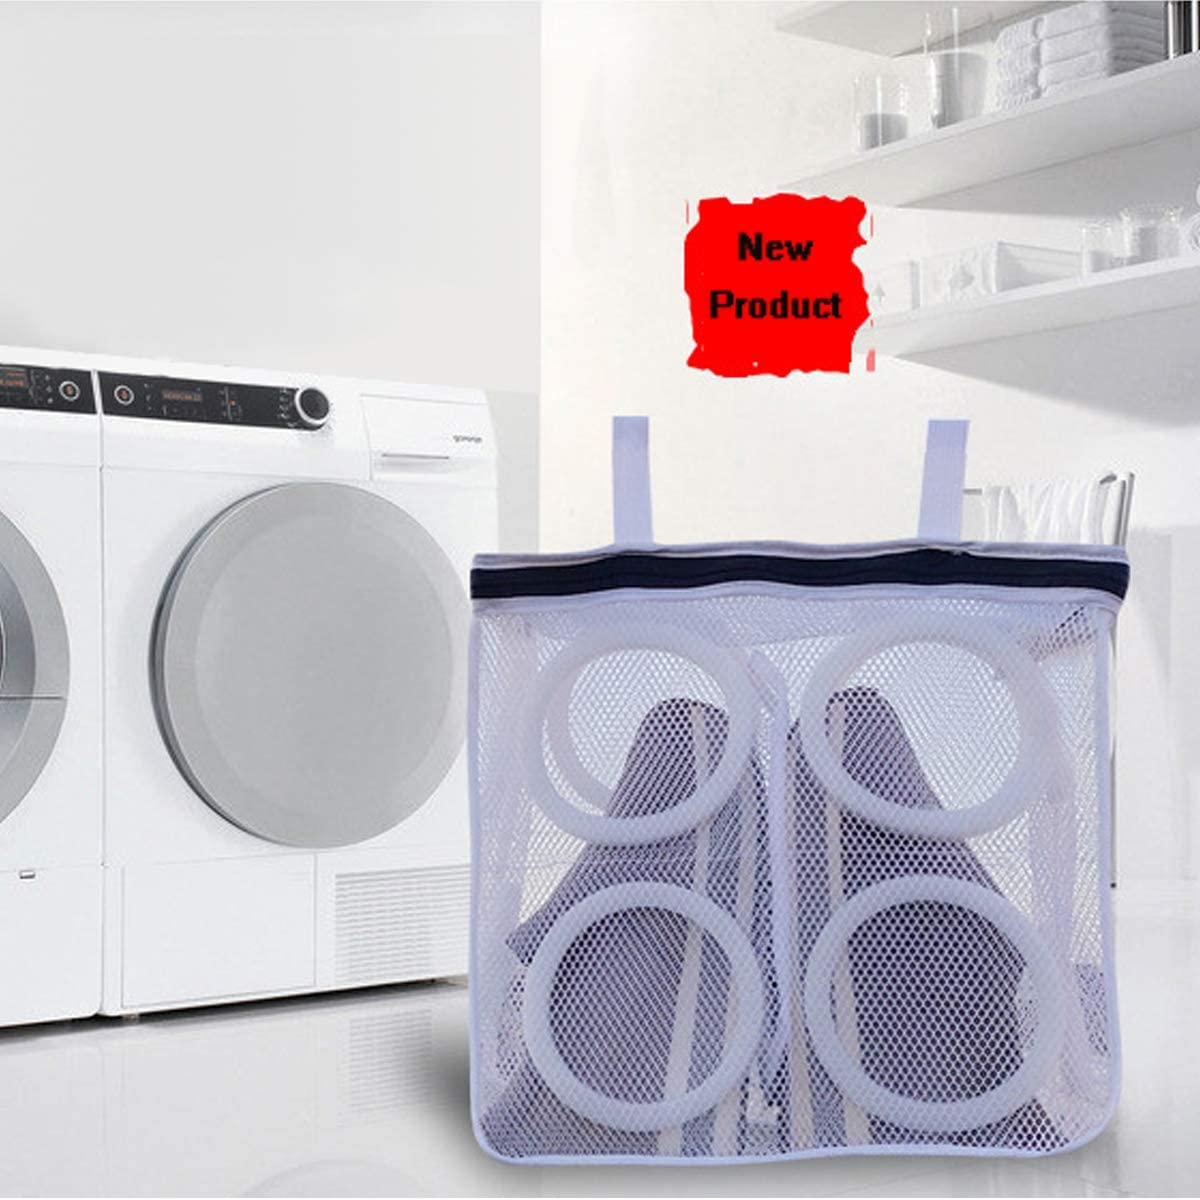 Shoes Wash Bag for Trainers,Sneakers,Boots,Slippers,Large Padded Mesh Shoes Protector in Washing Machine with Hanging Rope,Travel Laundry Drying Organizer for Underwear Bra Lingerie Sock (White)